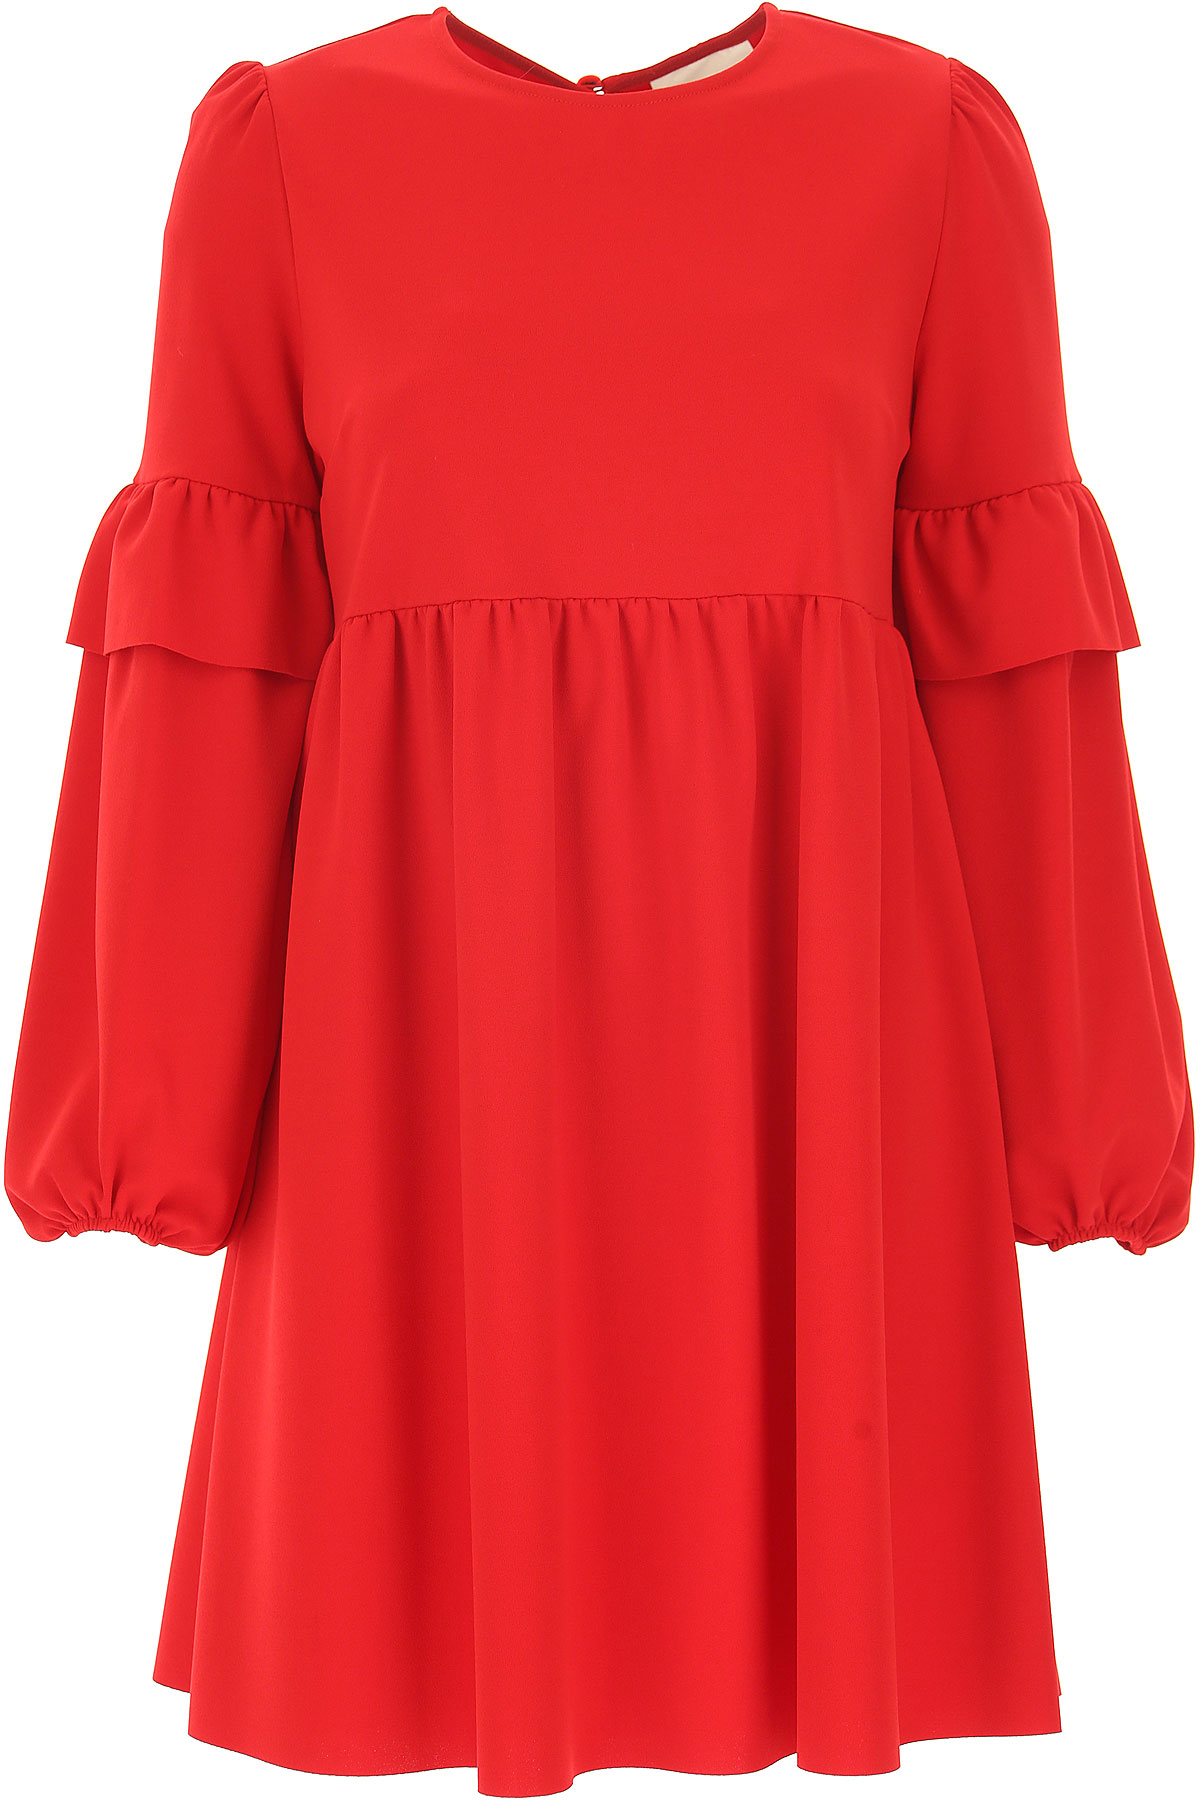 Image of Aniye By Dress for Women, Evening Cocktail Party, Red, polyestere, 2017, 2 4 6